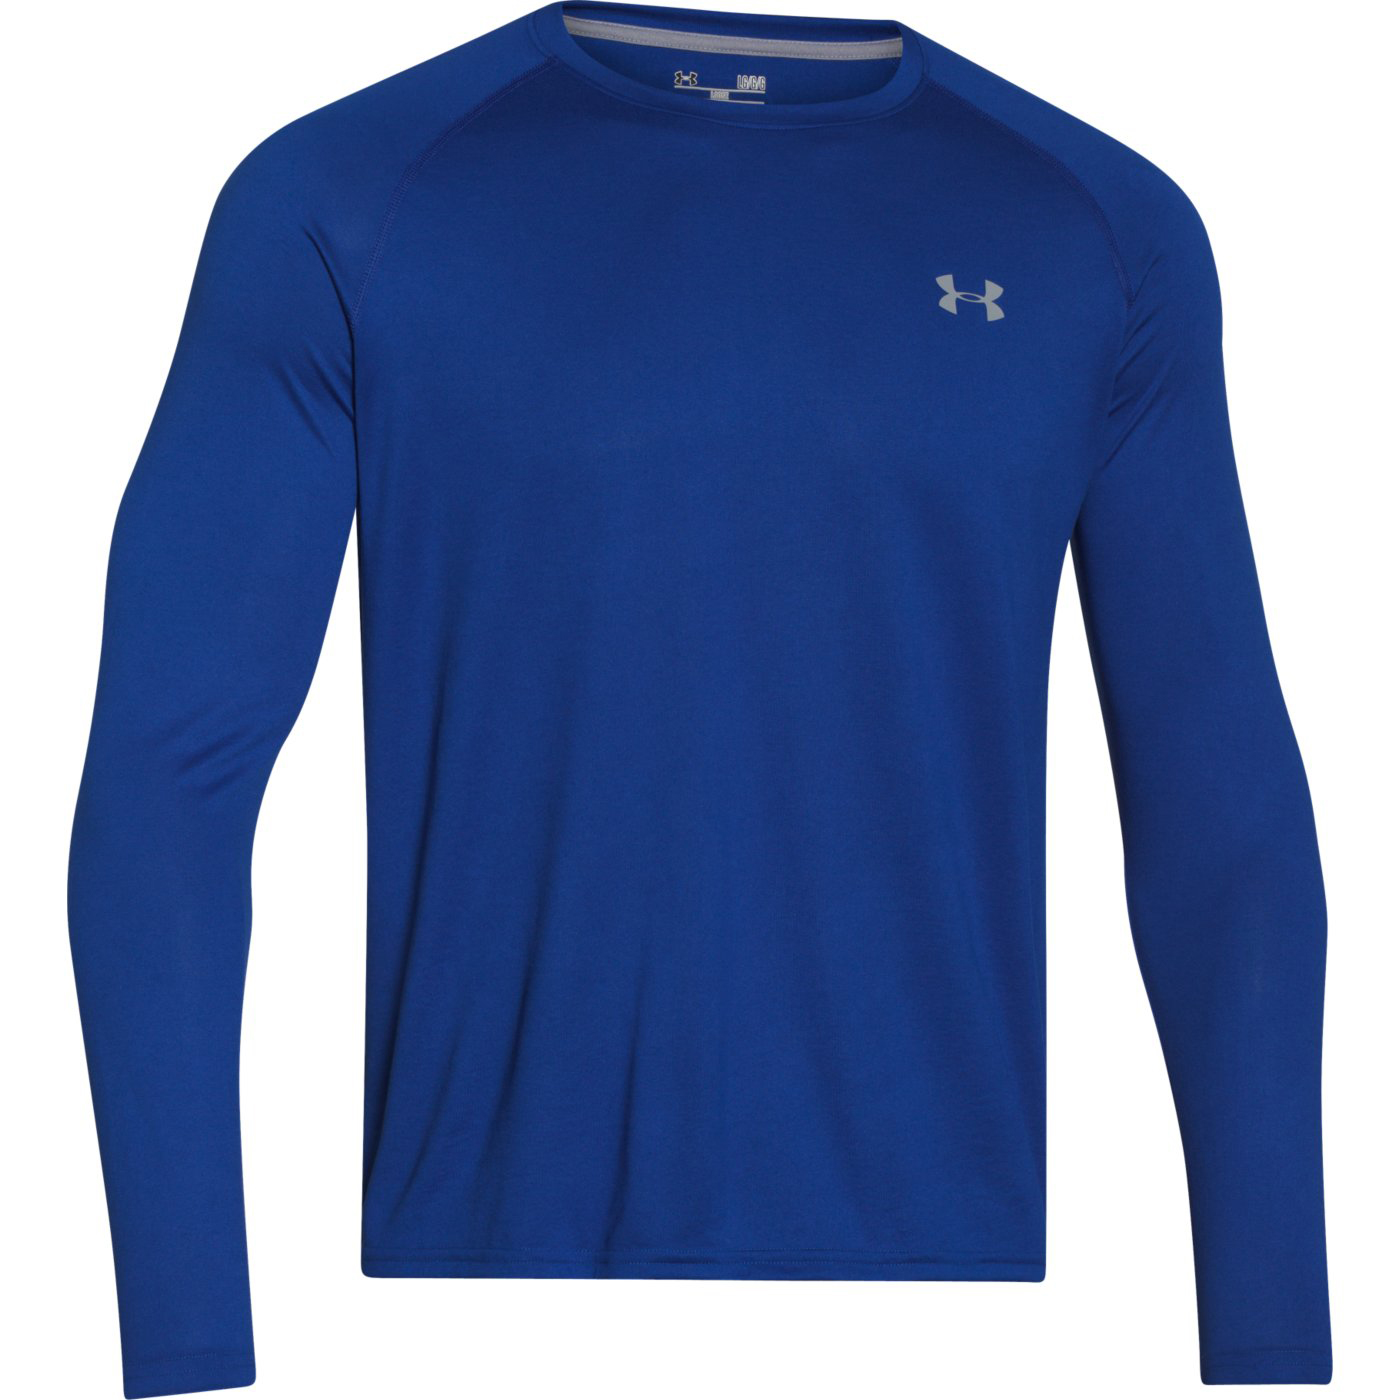 Under armour men 39 s ua tech longsleeve shirt for Under armour i will shirt